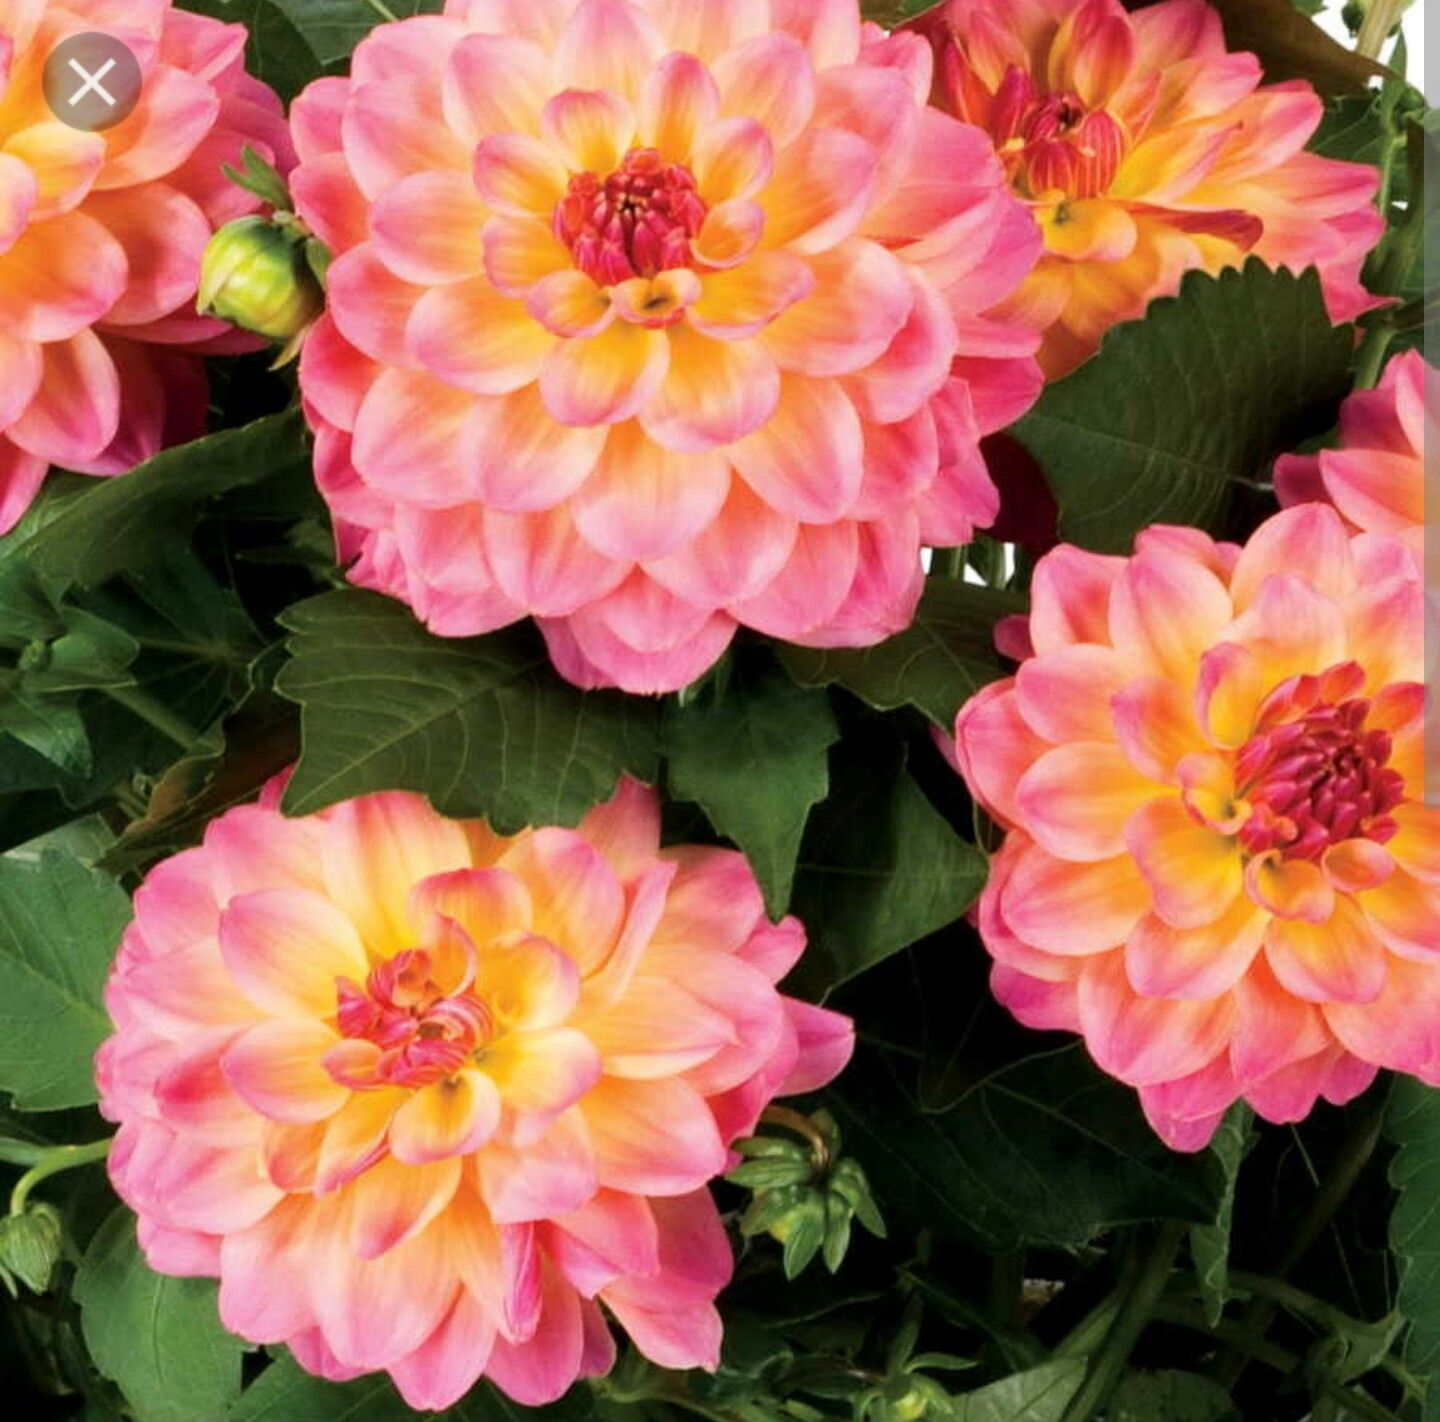 Dahlia hypnotica rose bi color very short only 12 18 high dahlia hypnotica rose bi color very short only 12 18 high izmirmasajfo